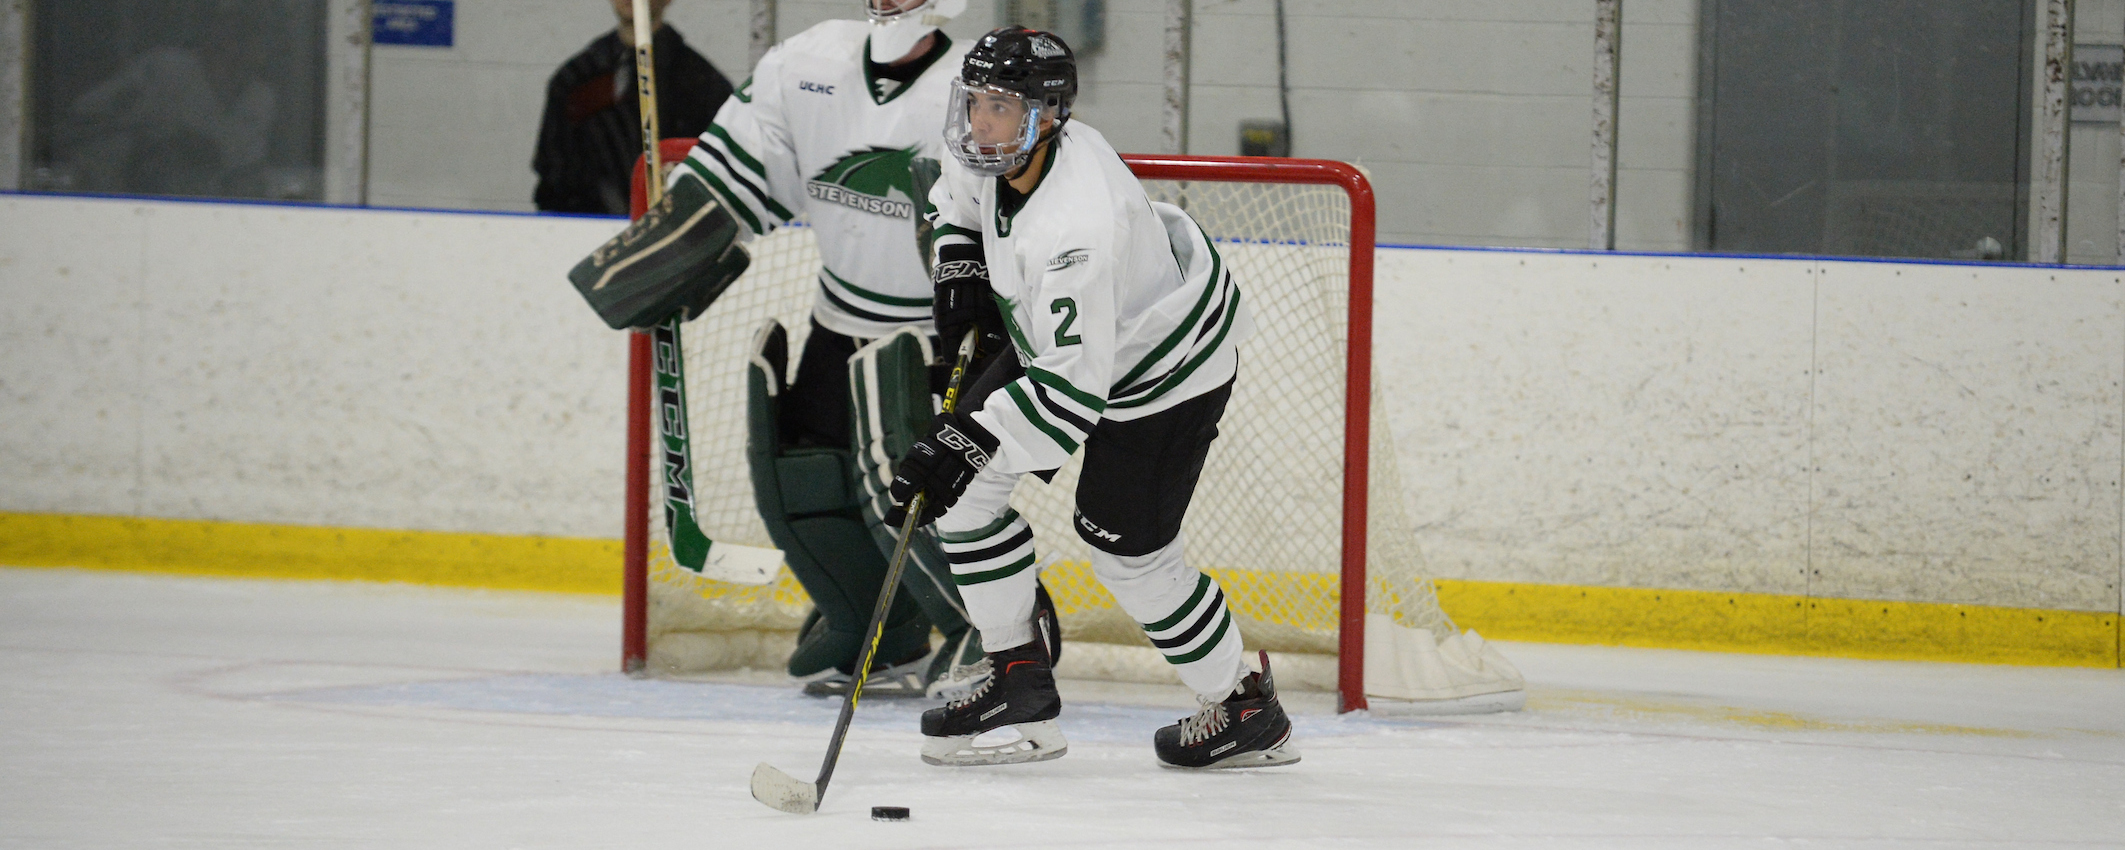 Abdella, Walsh Net First Career Goals in Tie at Fredonia